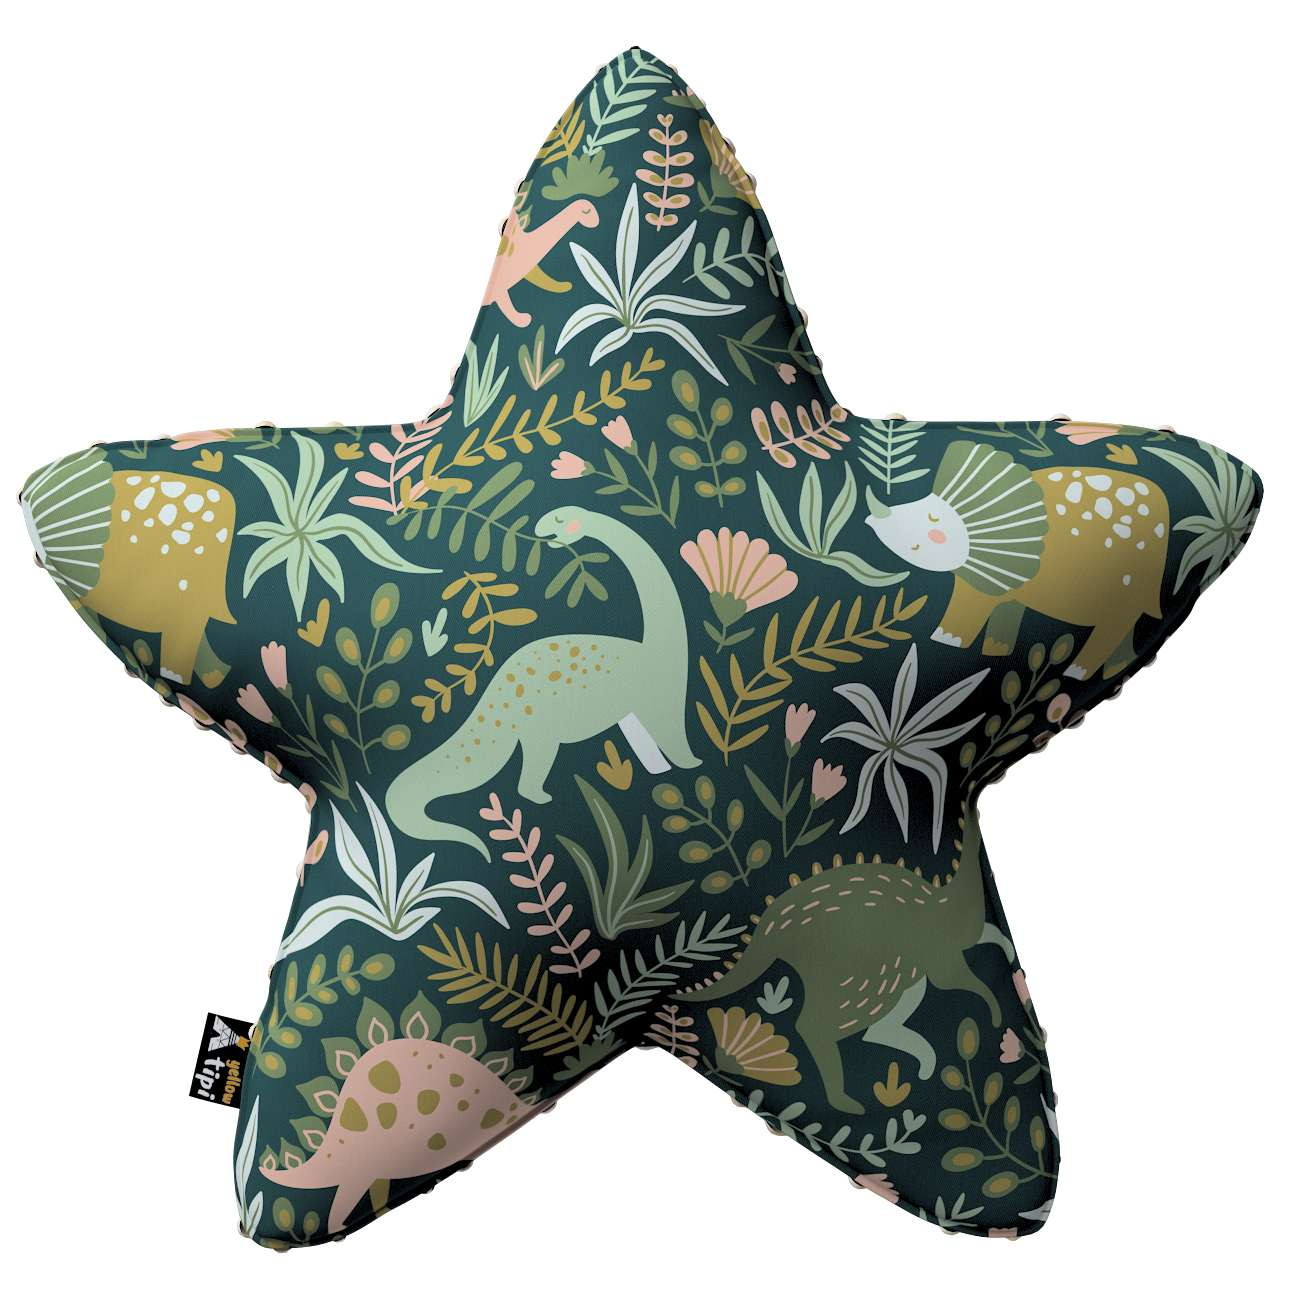 Kissen Lucky Star aus Minky von der Kollektion Magic Collection, Stoff: 500-20